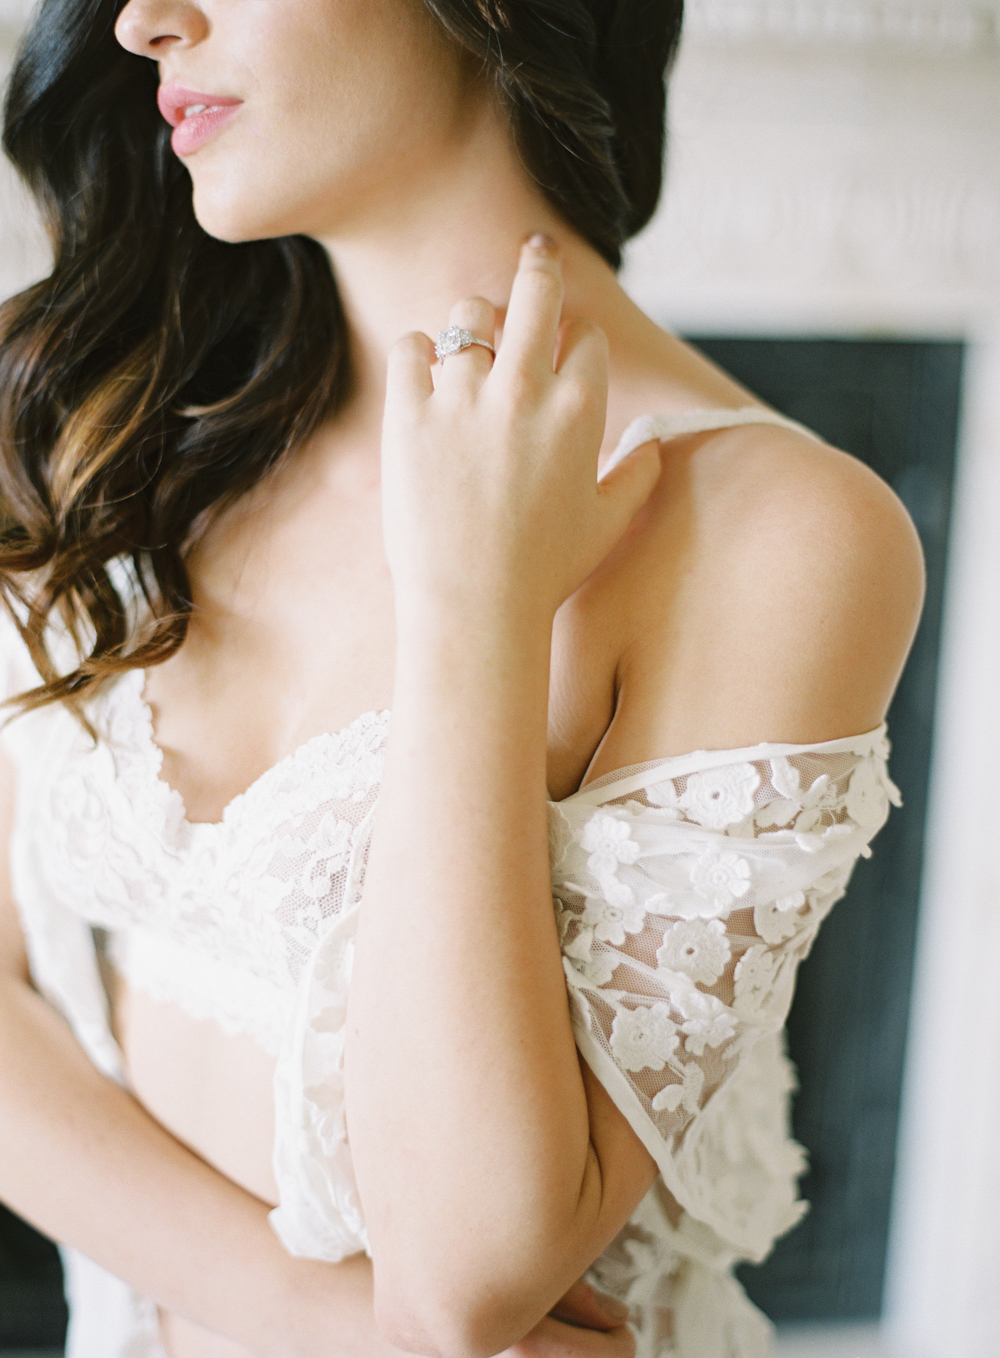 Bridal boudoir | neutral wedding | European Wedding Inspiration | French wedding | France wedding photographer | Southern California film photographer | San Diego wedding photographer | Whiskers and Willow Photography